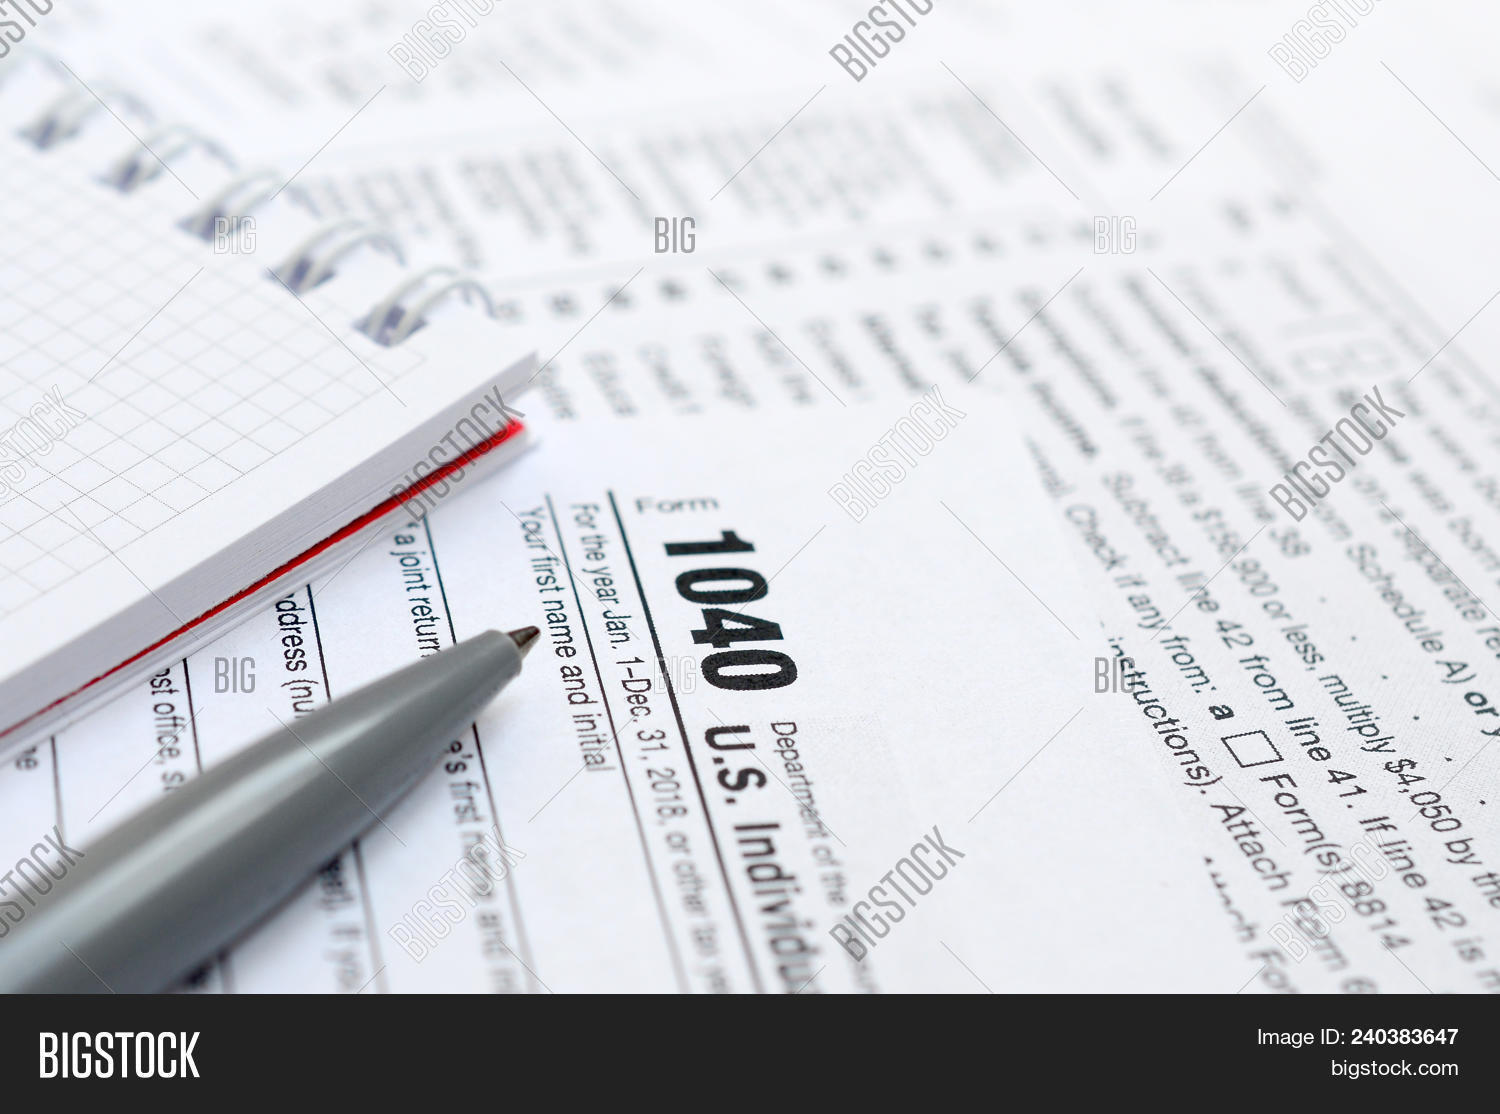 Pen Notebook Lies On Image Photo Free Trial Bigstock